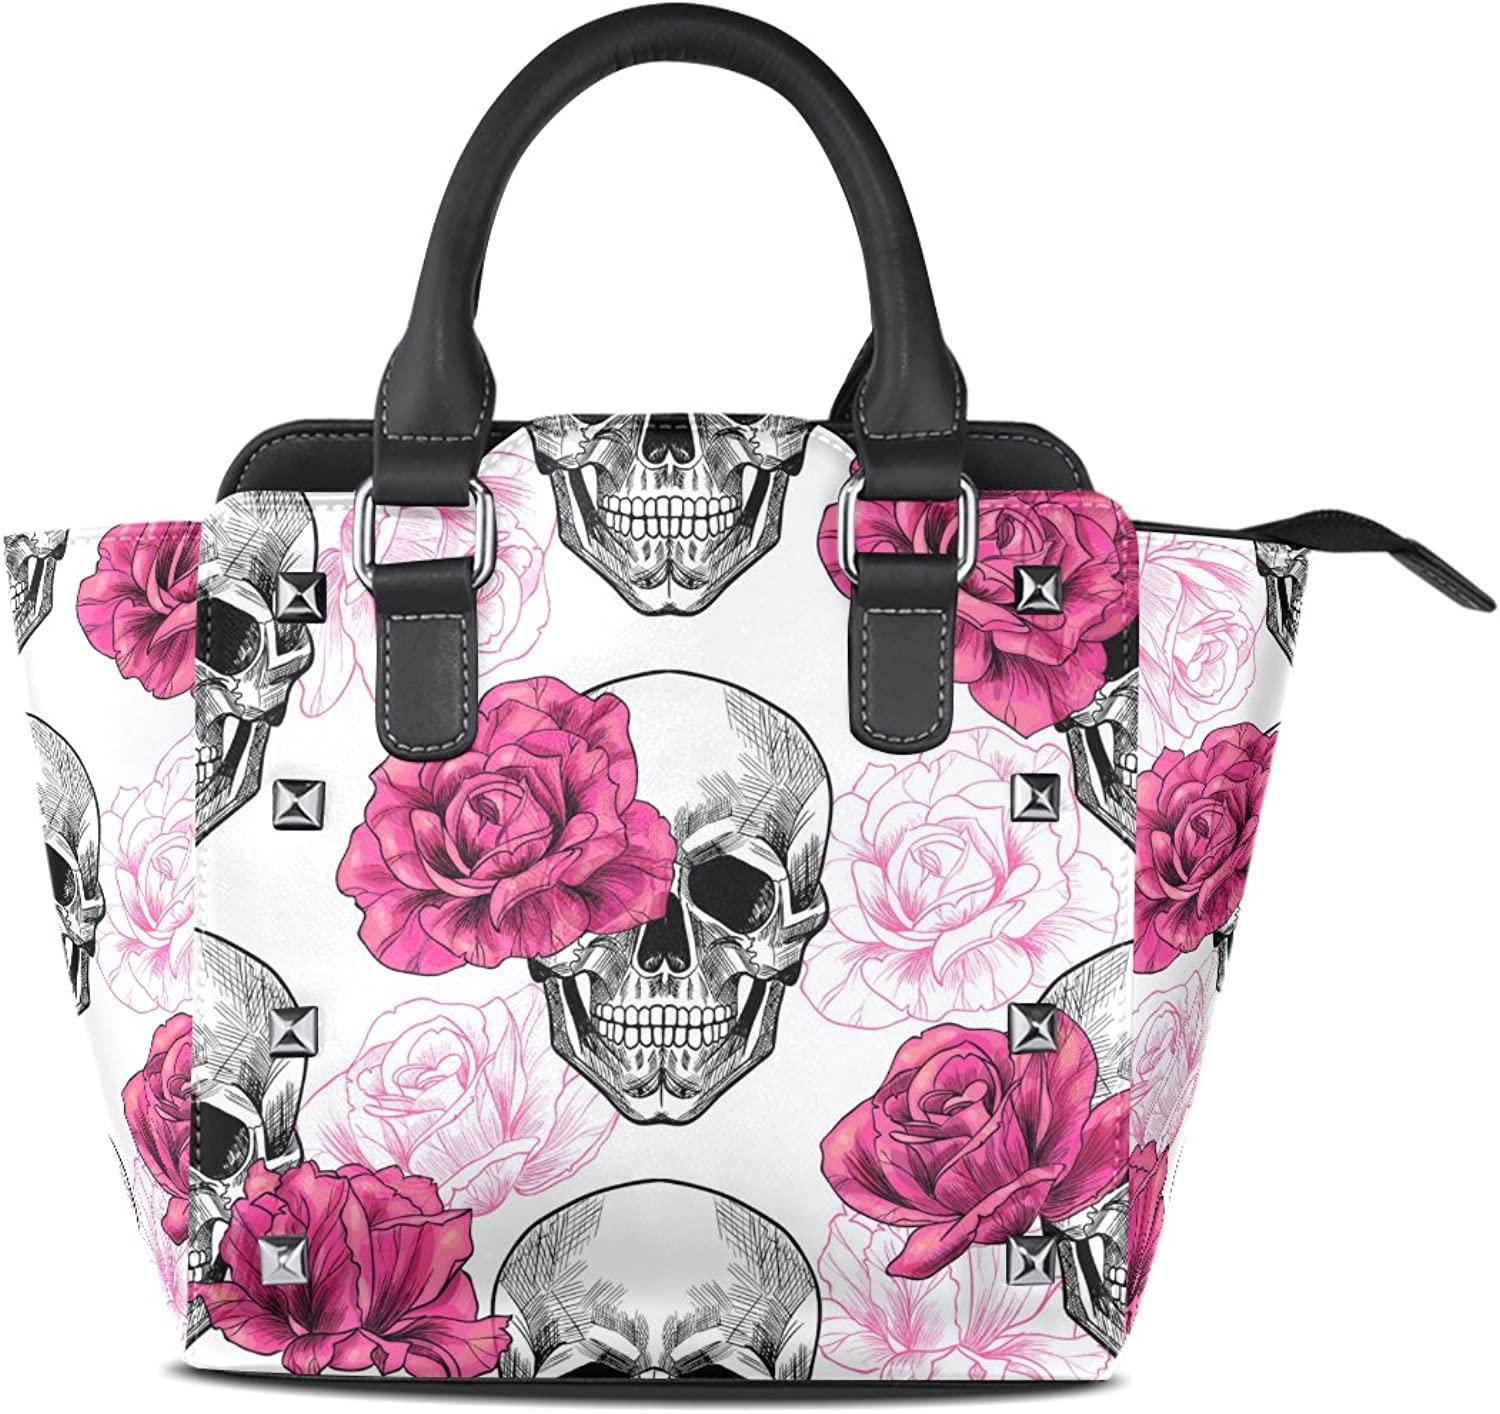 My Little Nest Women's Top Handle Satchel Handbag Skull and pinks Ladies PU Leather Shoulder Bag Crossbody Bag